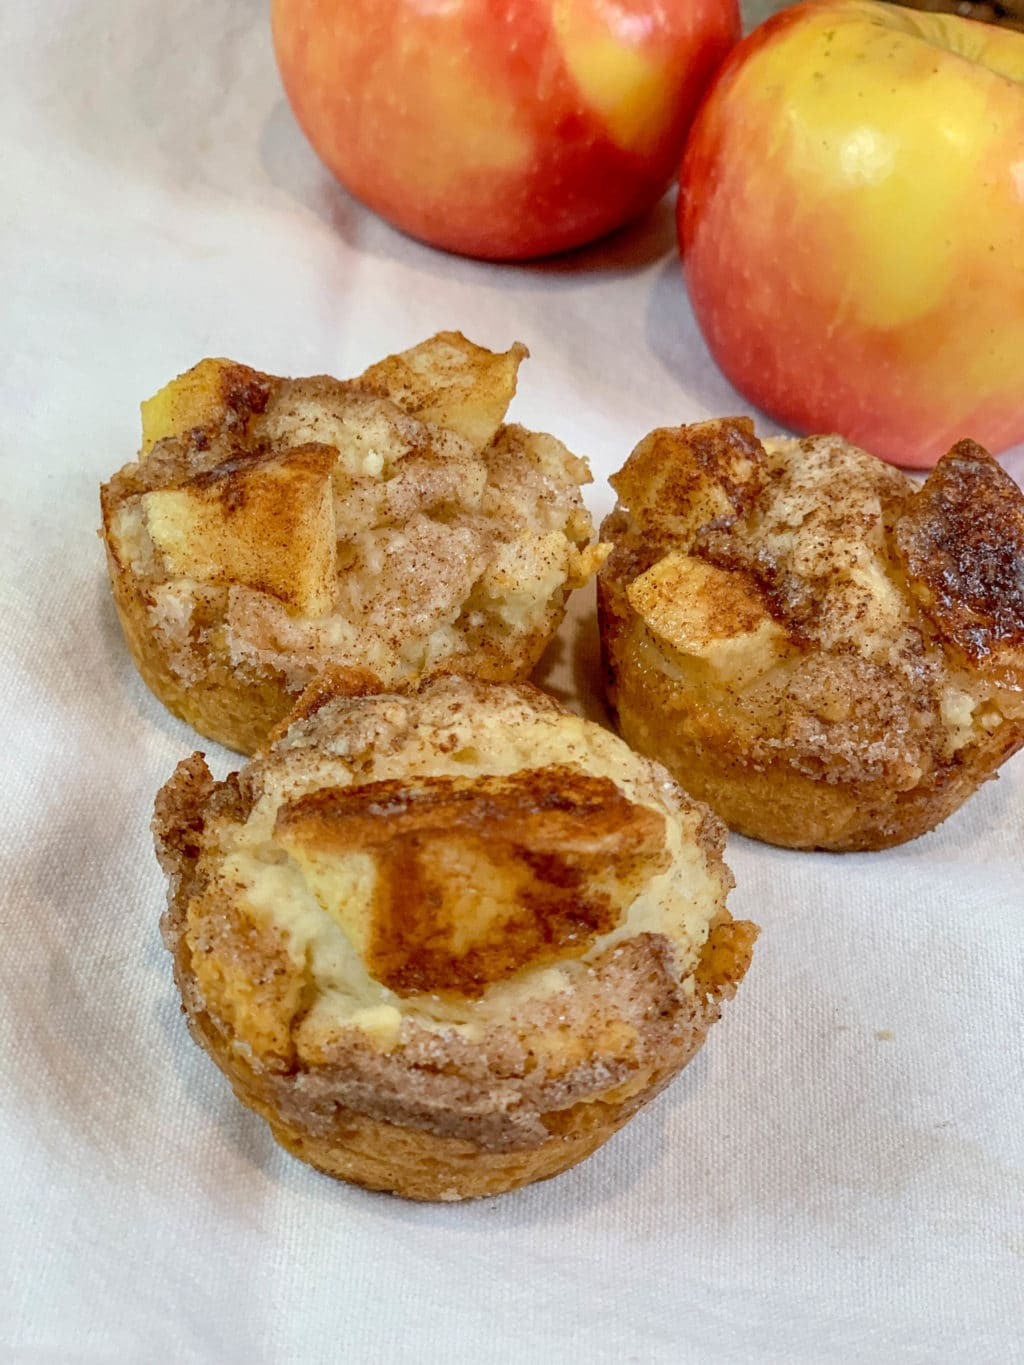 Cinnamon Apple Biscuits Hot Rod S Recipes